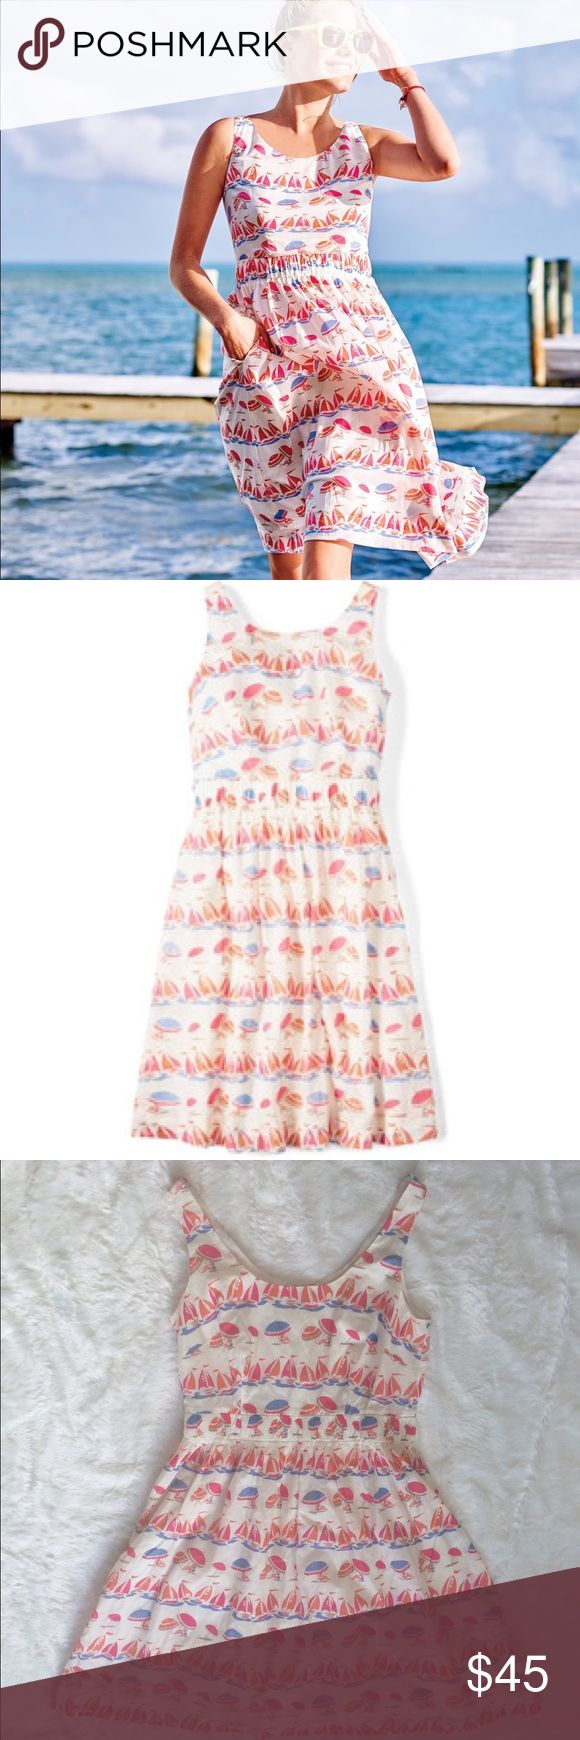 Boden Hattie Dress Adorable beach and sailboat print dress from Boden. Perfect for the beach or a tea party. Elastic waist and a zipper in the back. In great used condition. Make me an offer. Discount on bundles of two or more. Boden Dresses Midi